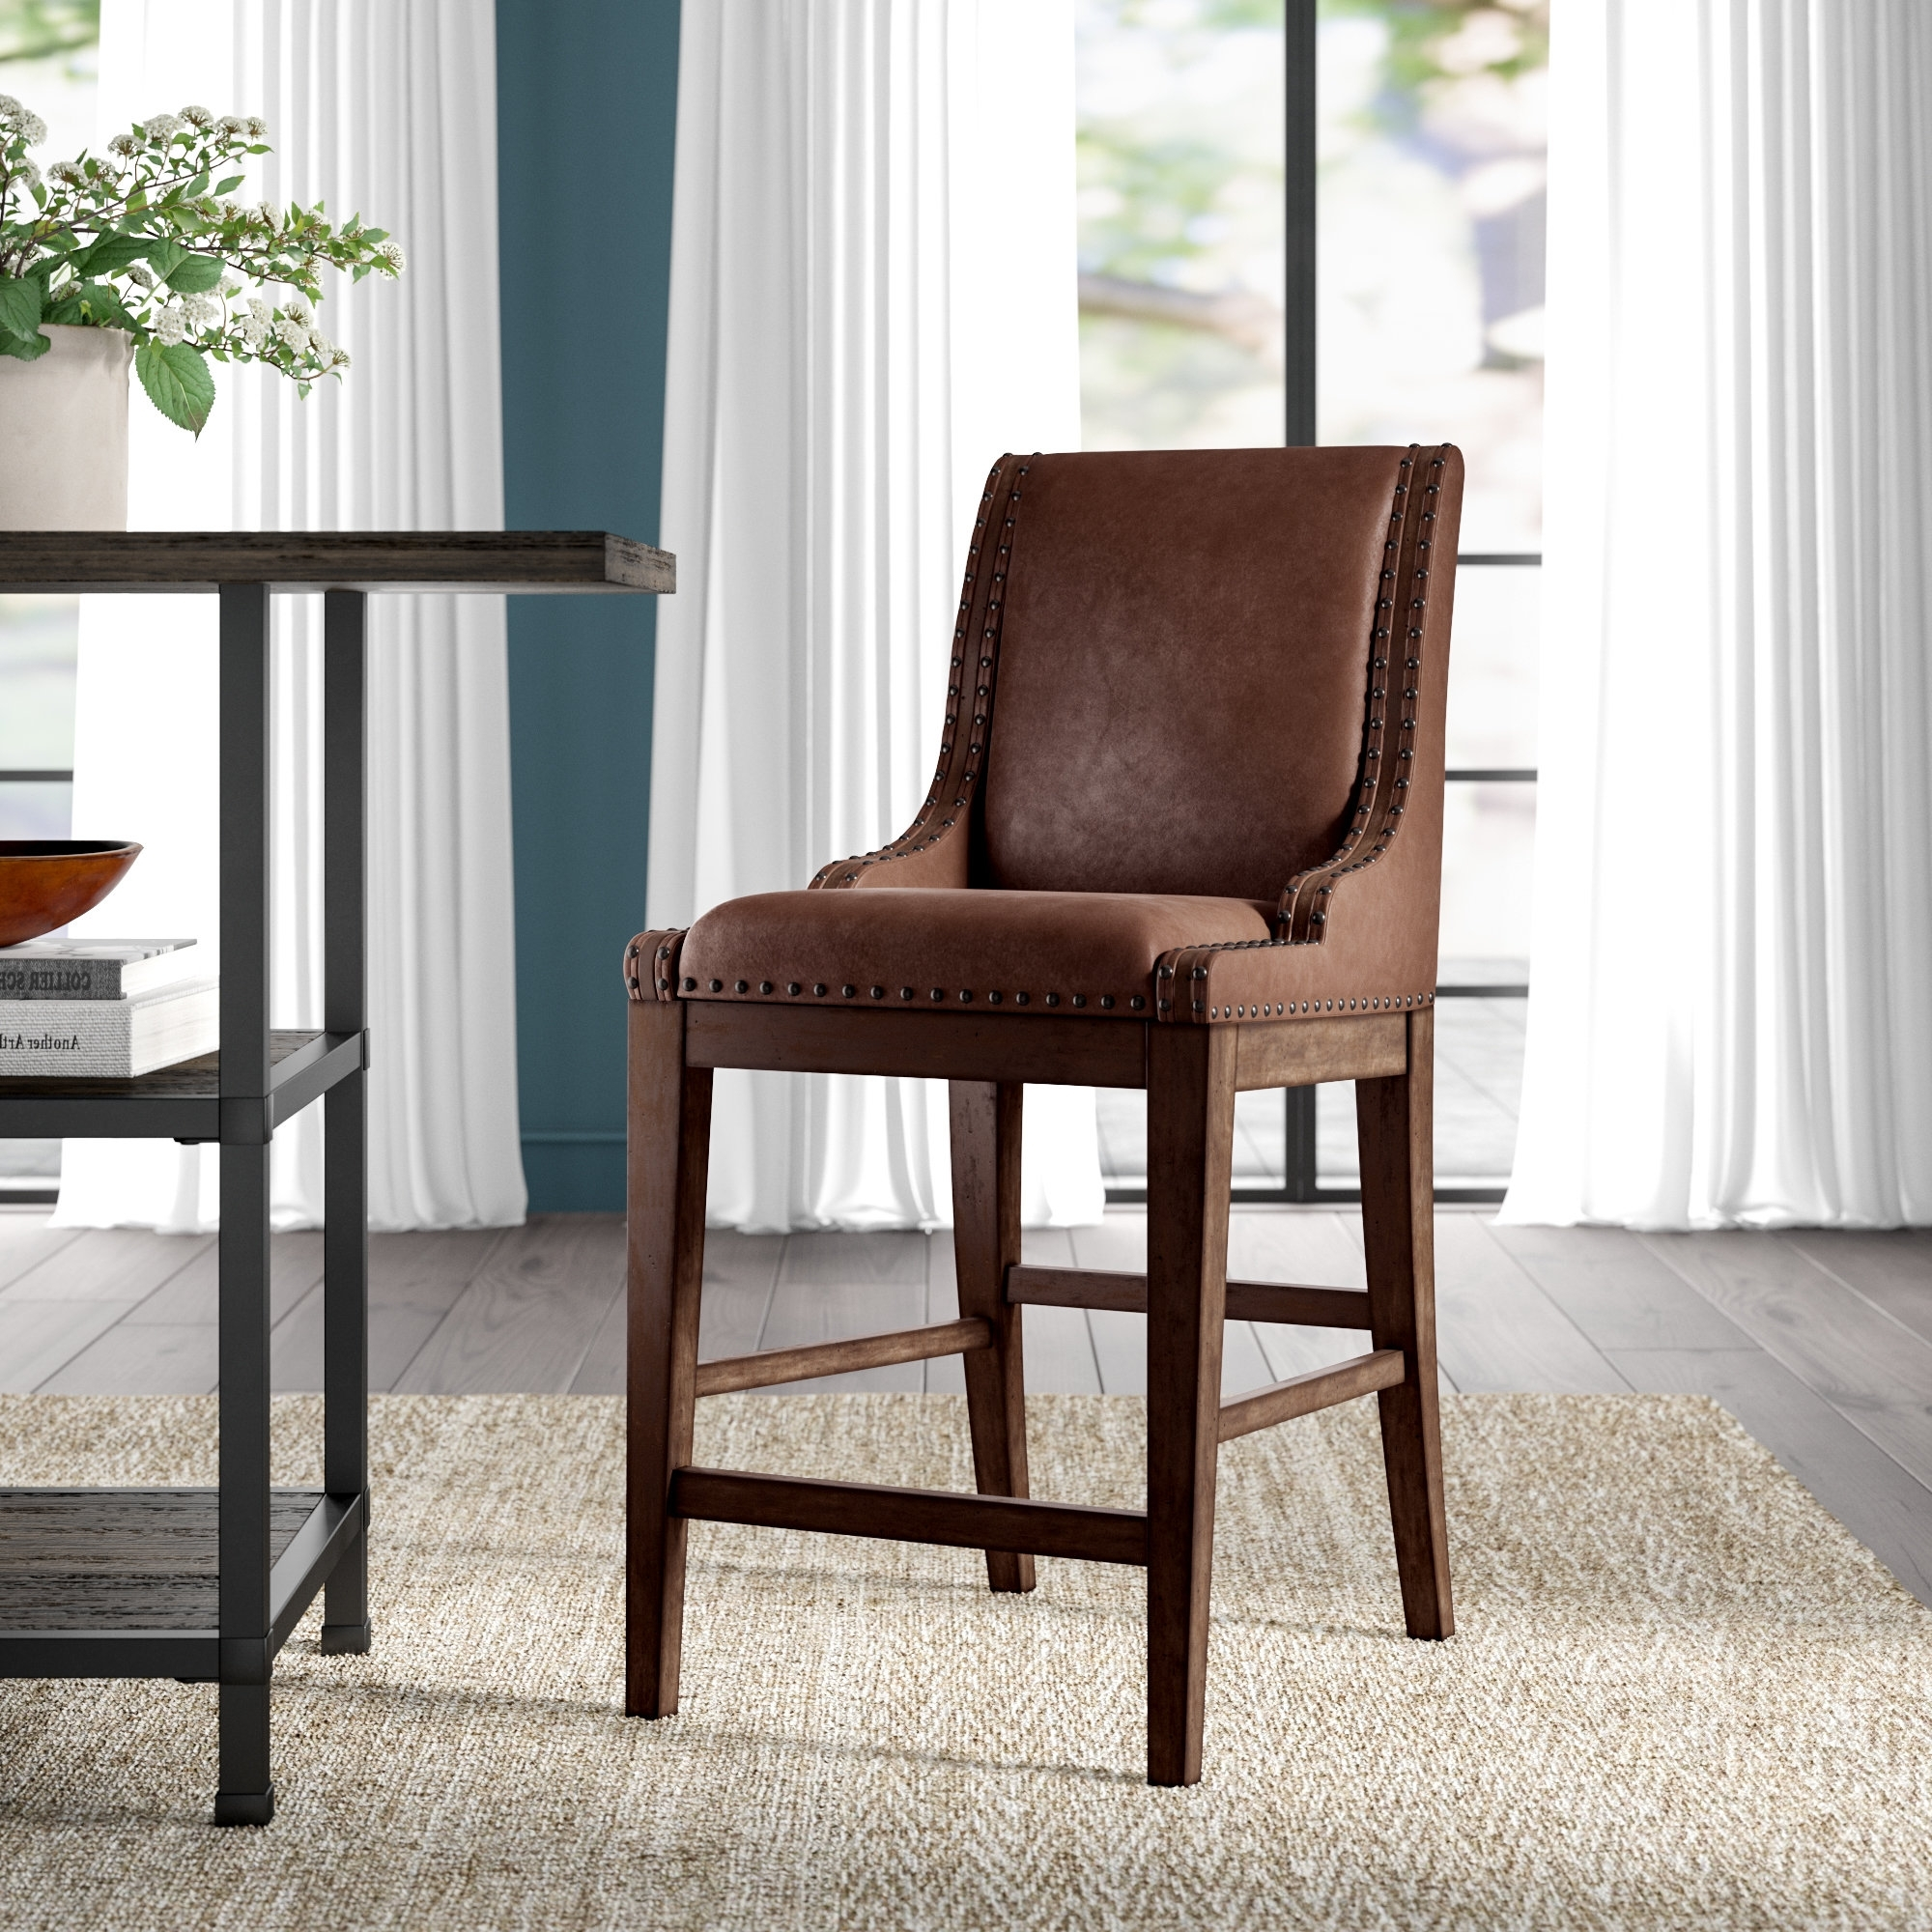 Greyleigh Cairo Upholstered Dining Chair (View 11 of 20)